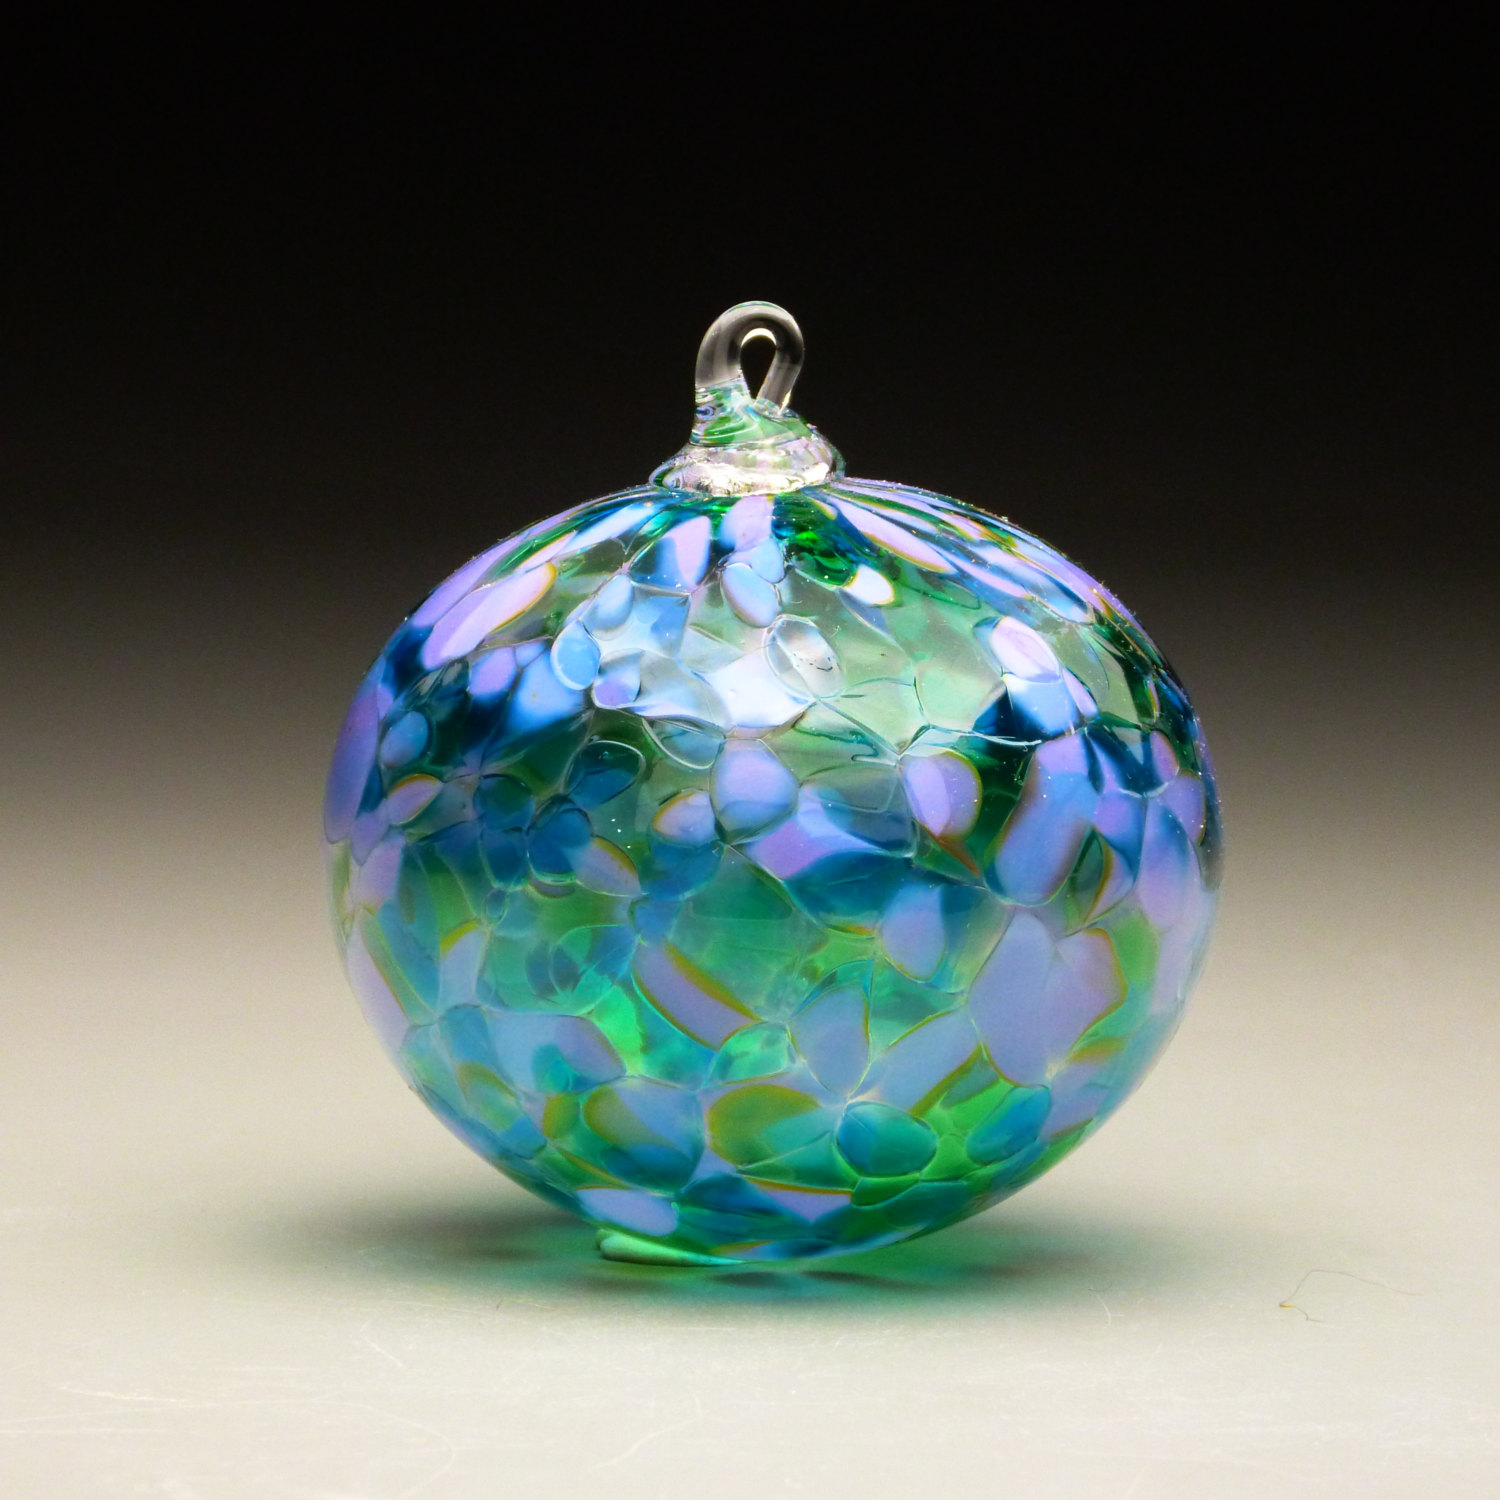 Christmas ornaments glass - 3 Blown Glass Christmas Ornament